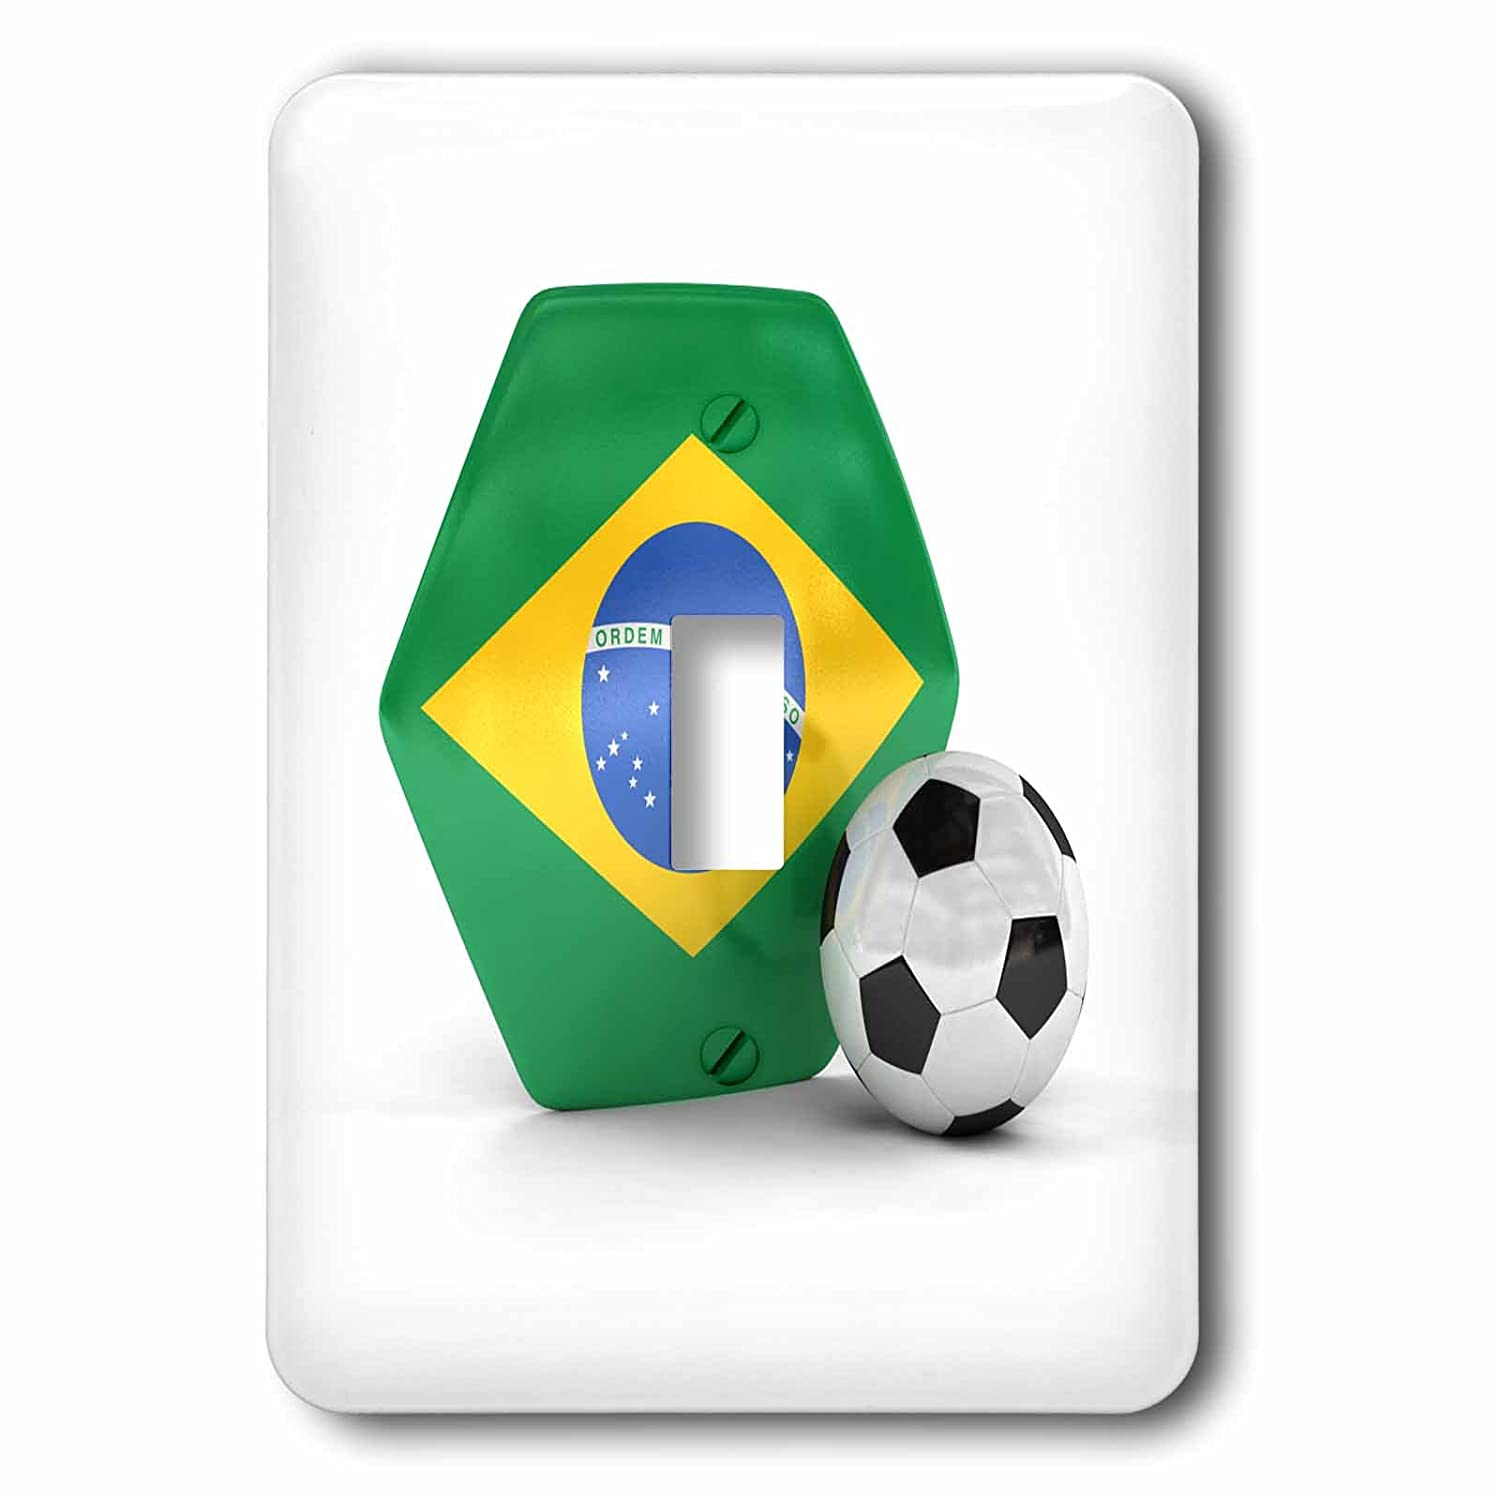 LSP/_181893/_1 Single Toggle Switch Brazil Soccer Ball lsp/_181893/_1 3dRose